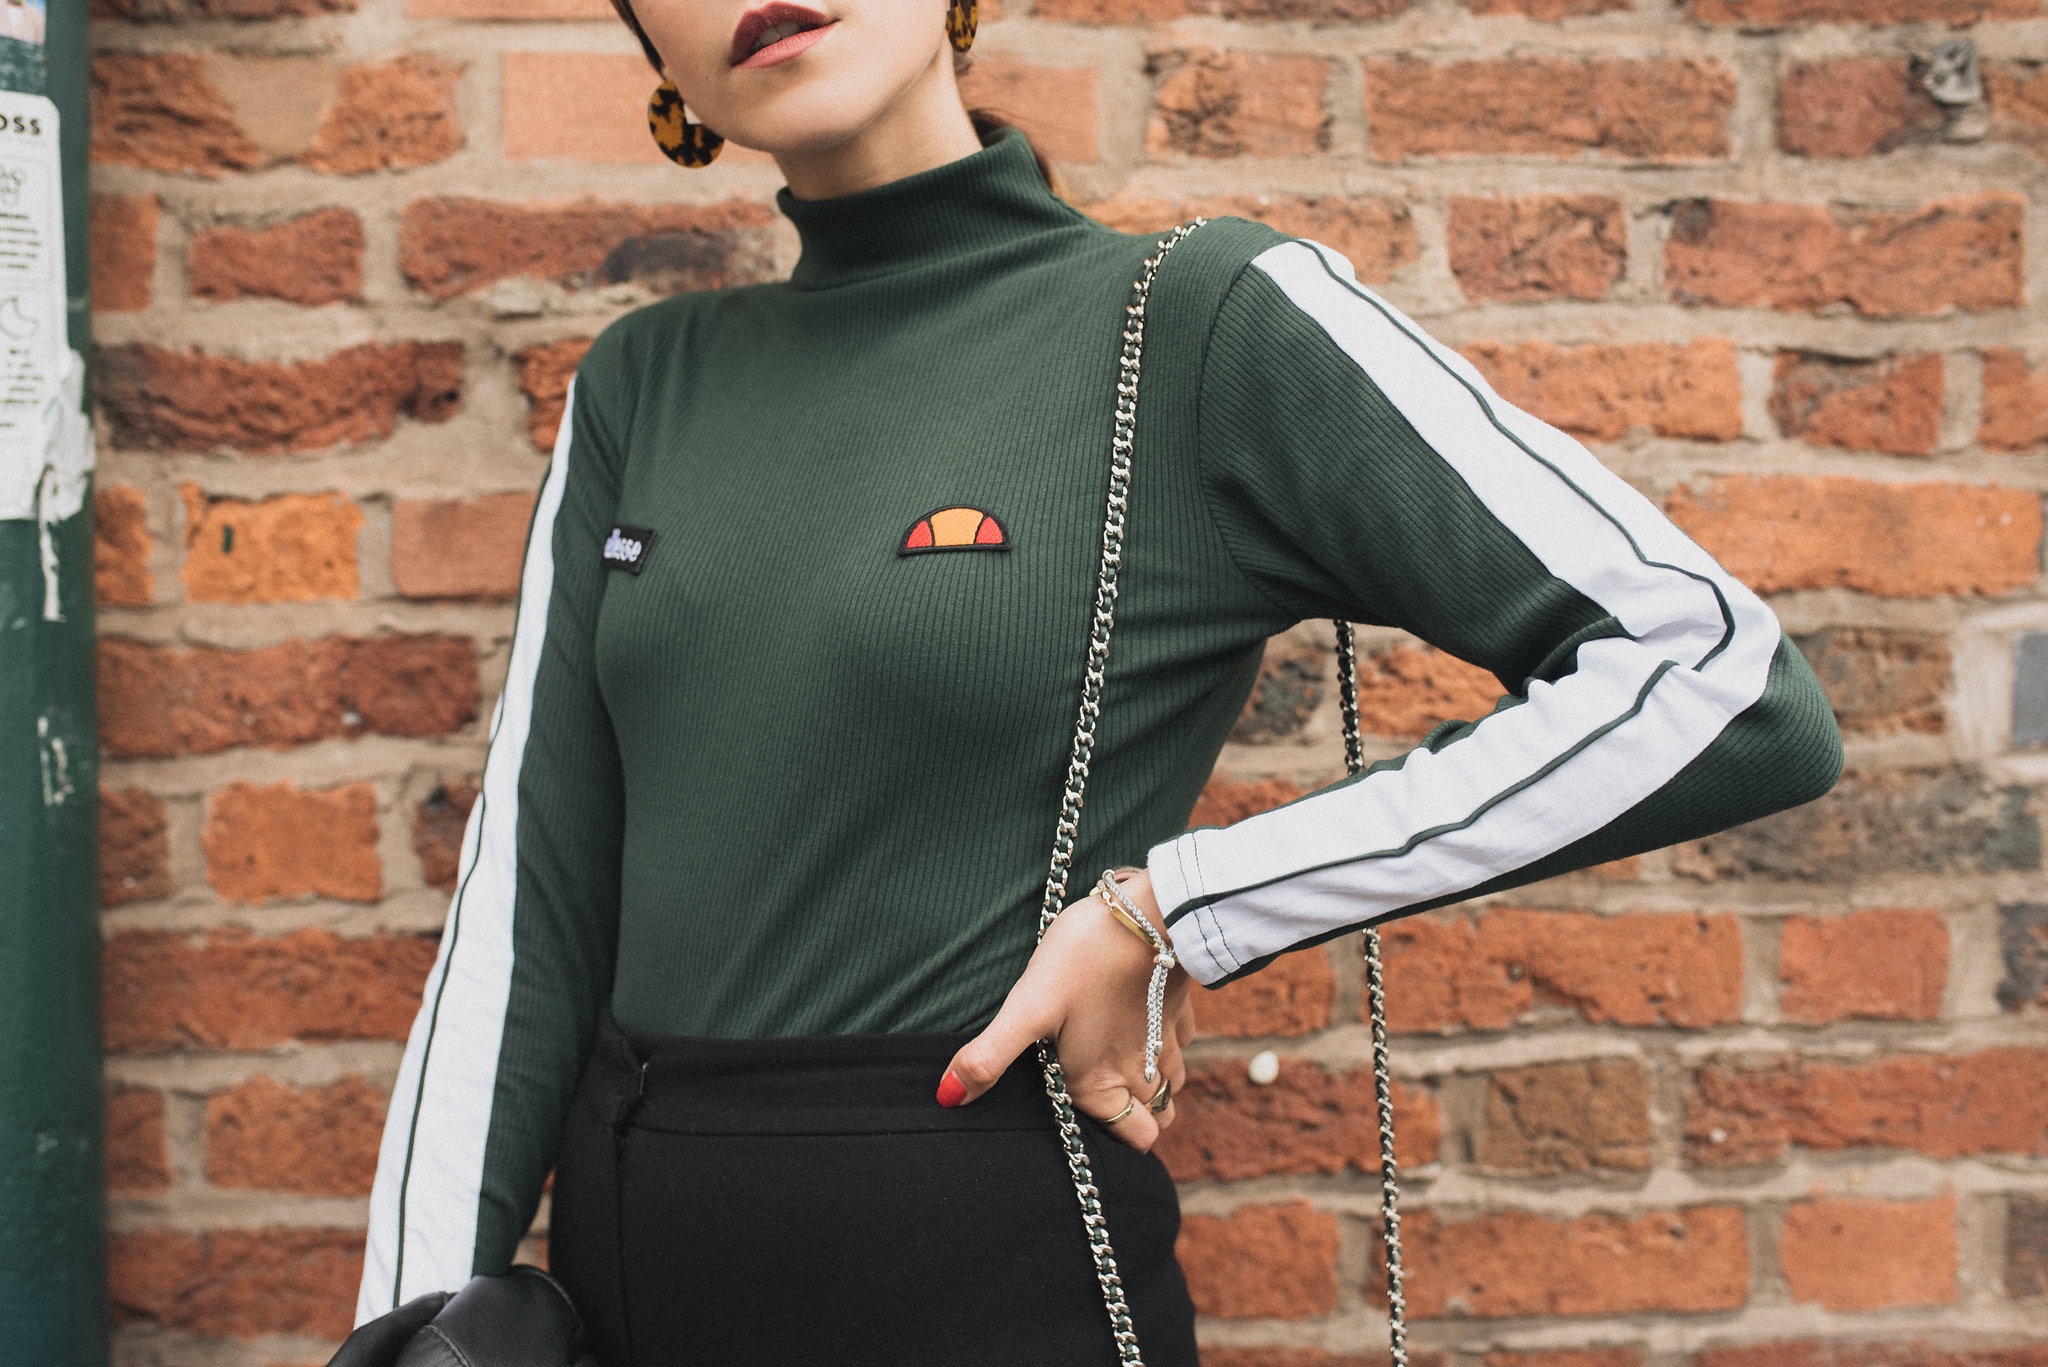 MEGAN ELLABY HOW TO WEAR FOREST GREEN